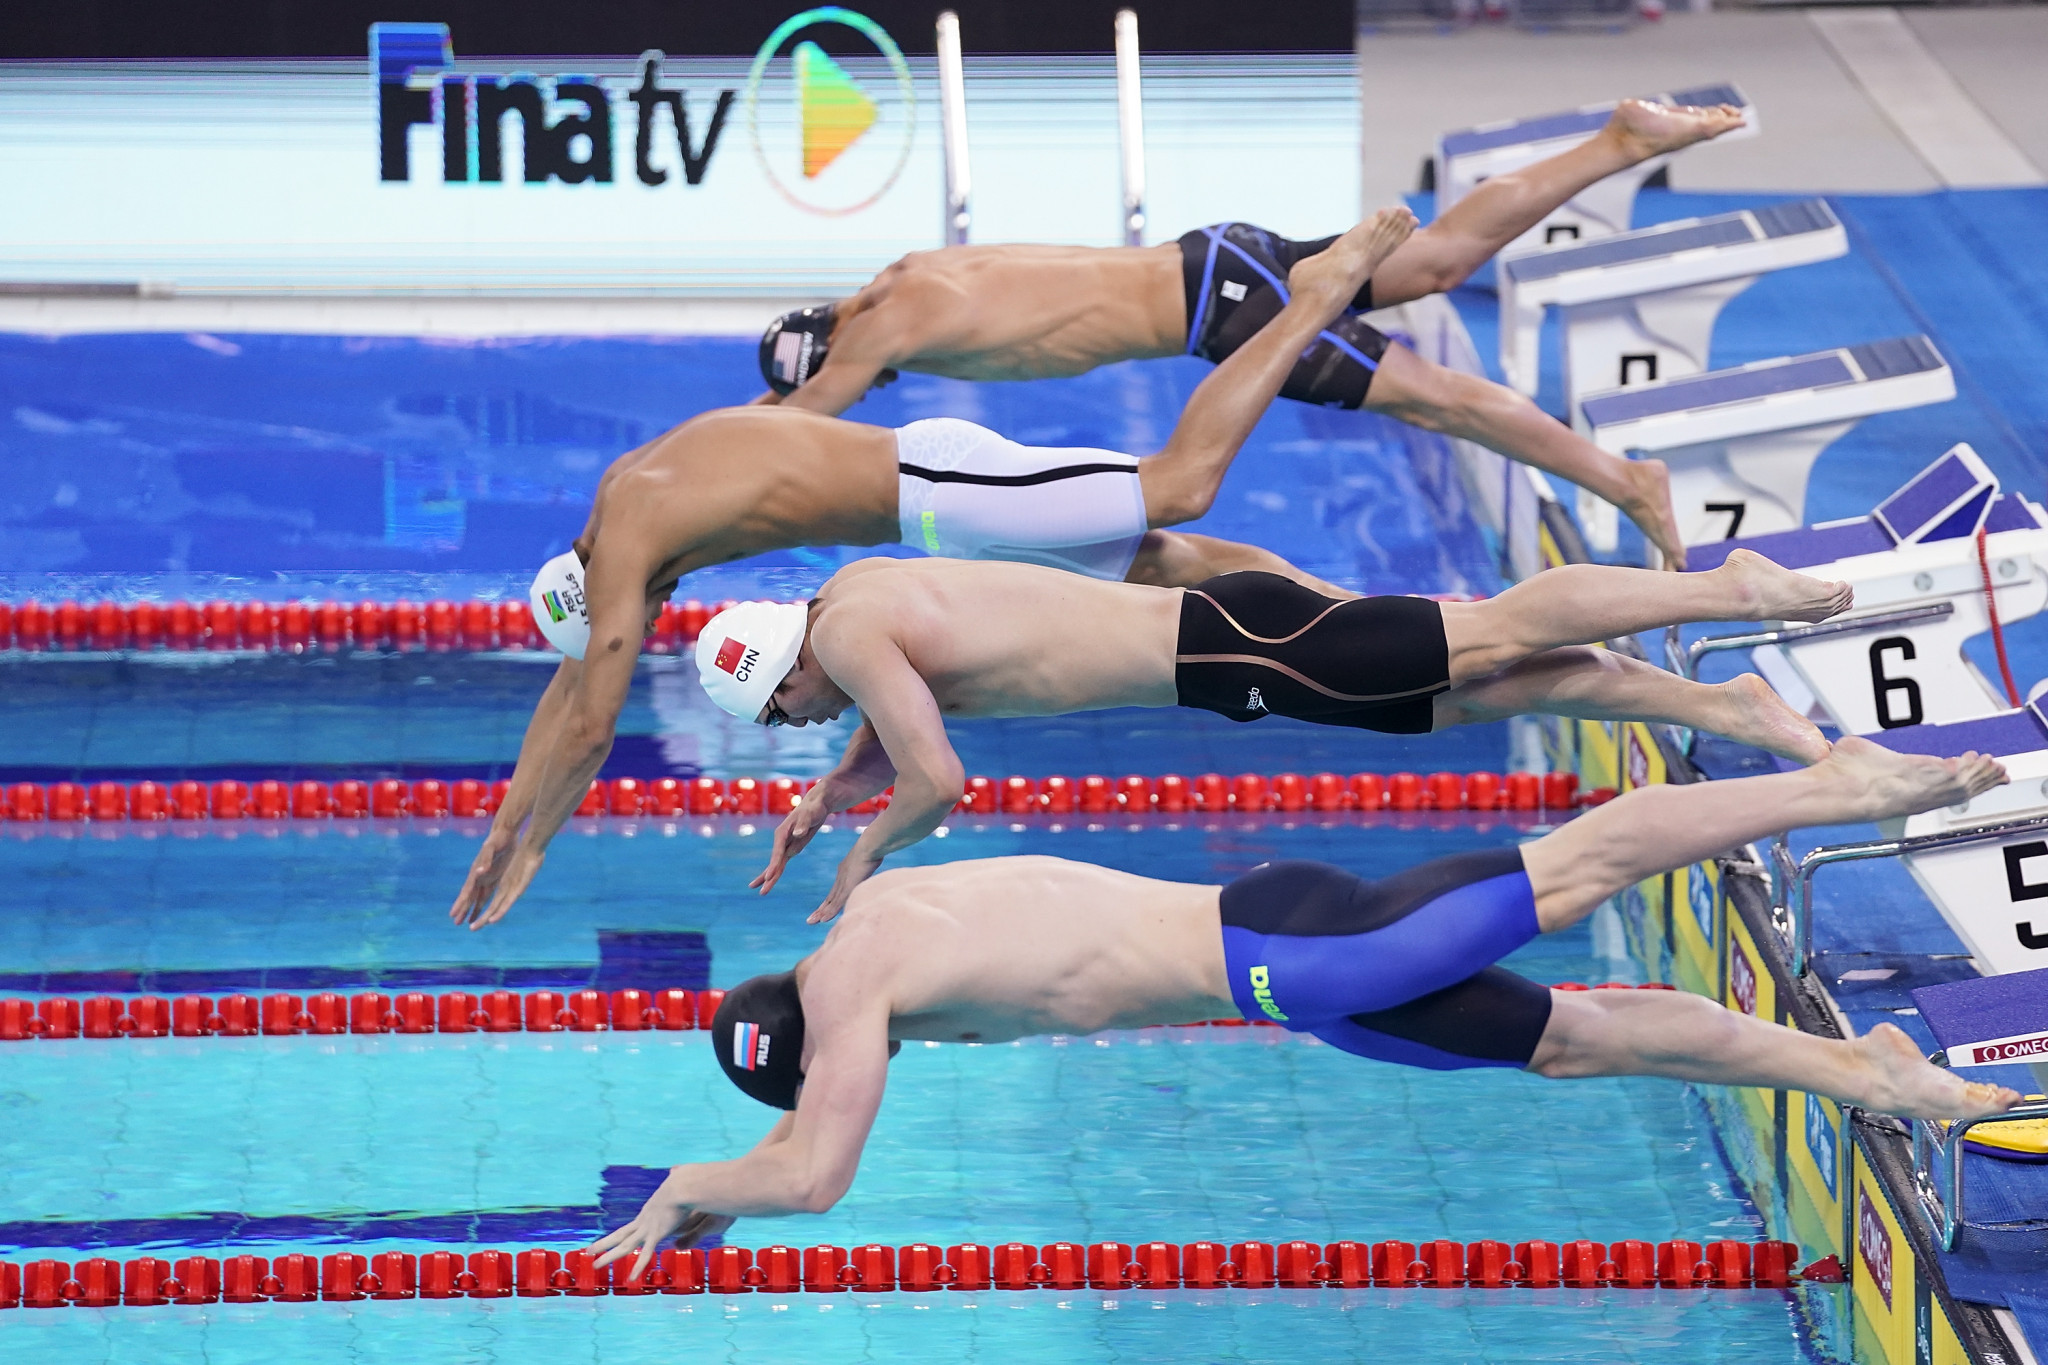 FINA reveals 20 doping tests conducted at opening Champions Swim Series event in Guangzhou